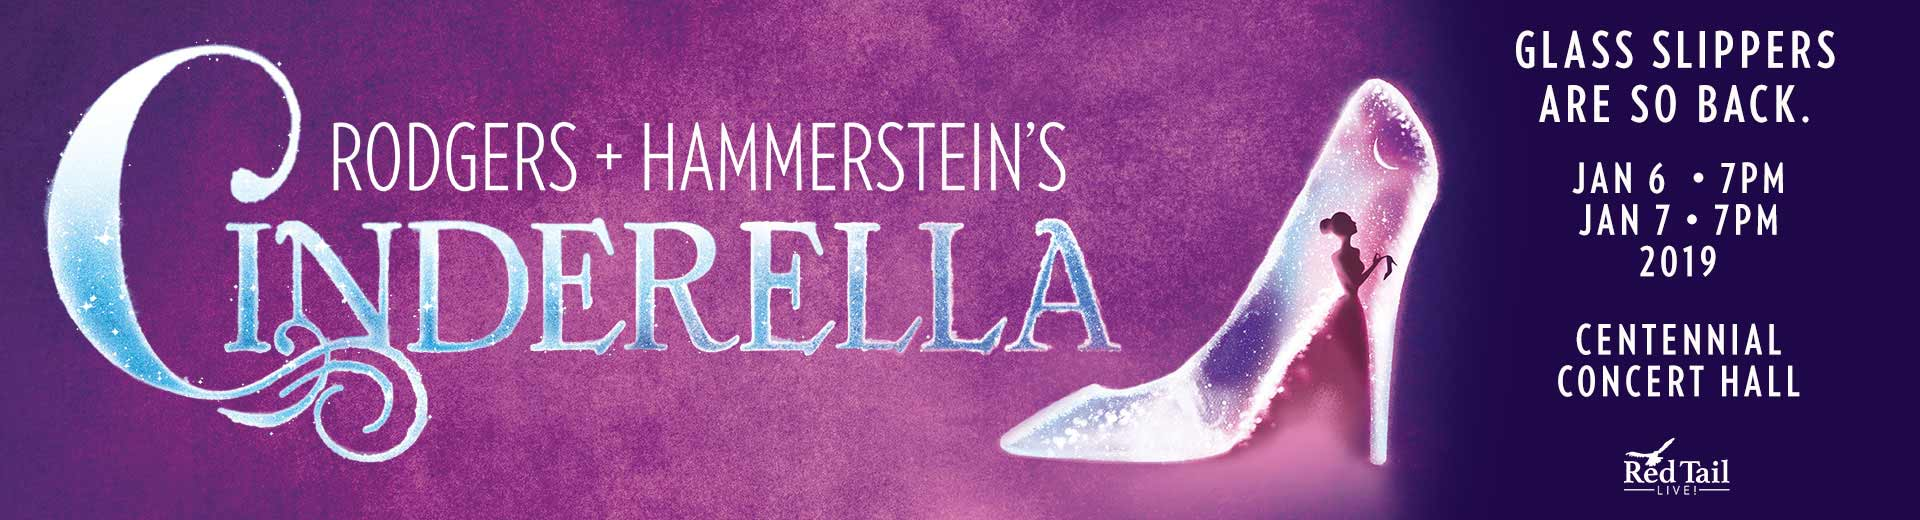 Cinderella in Winnipeg January 6-7, 2019